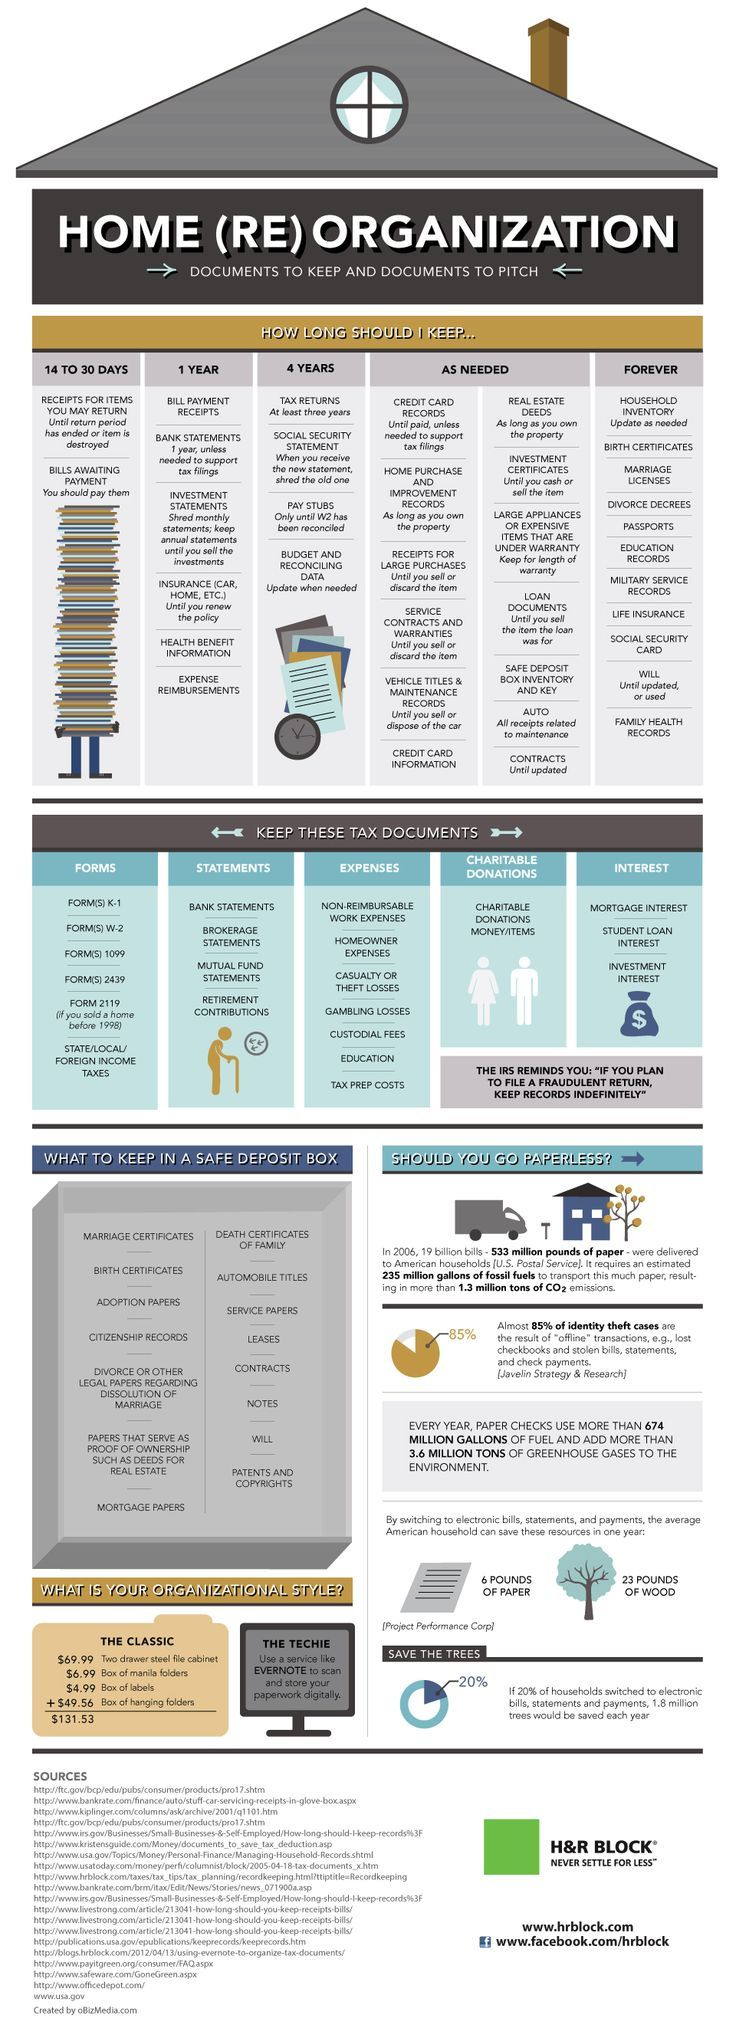 Home ReOrganization Infographic